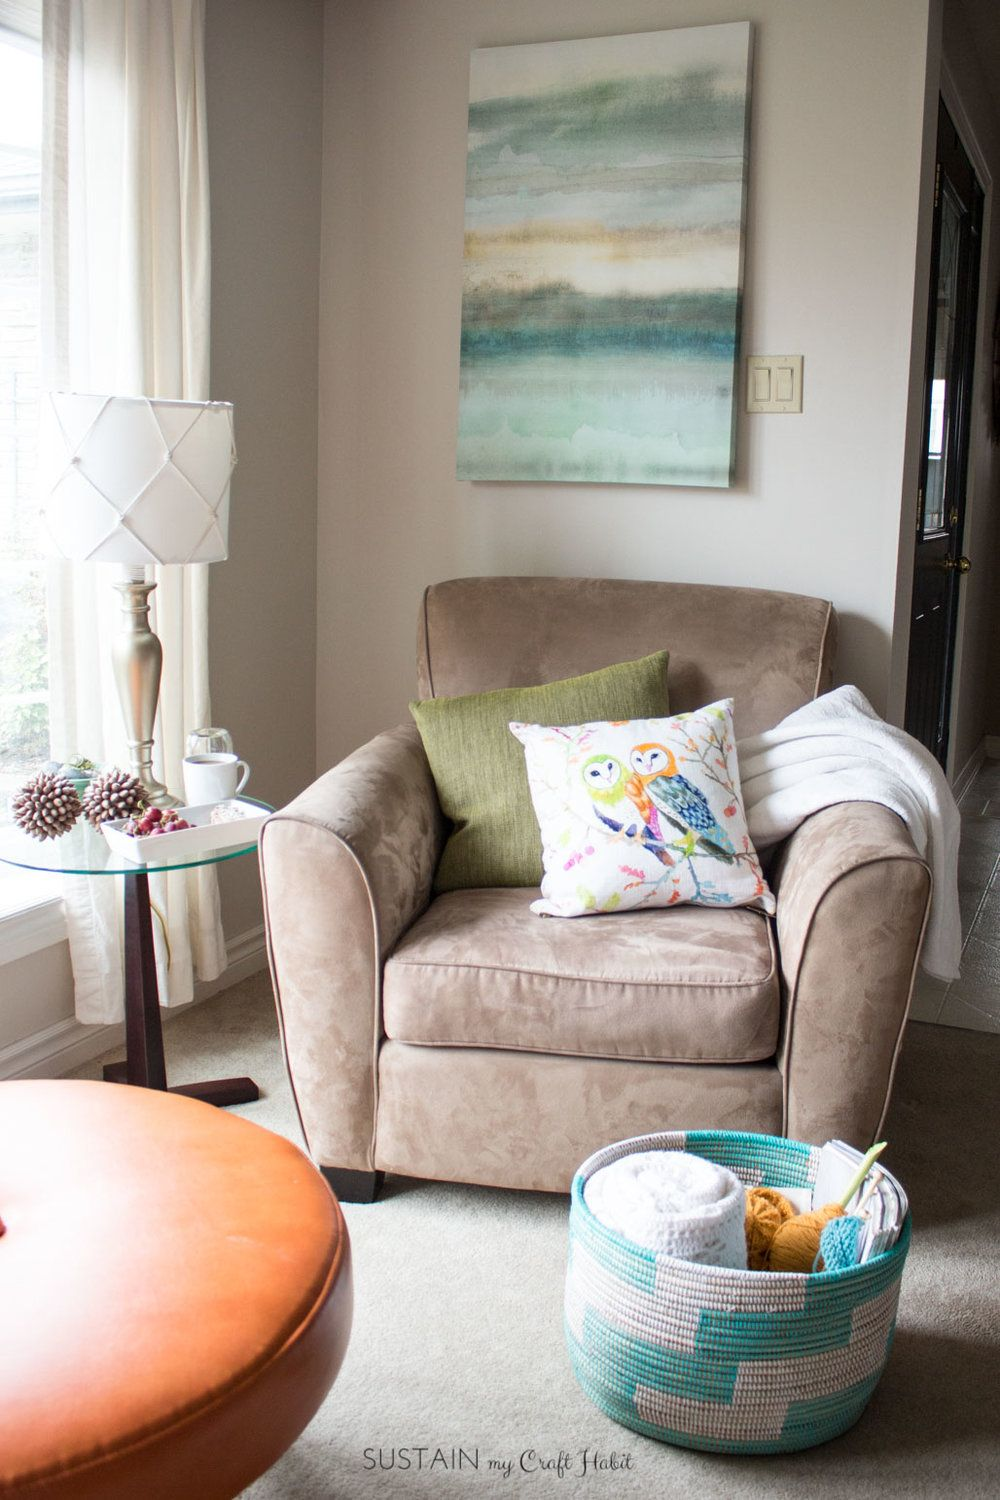 Cozy Living Room Decorating Ideas And Other Self Care Tips For Busy Moms